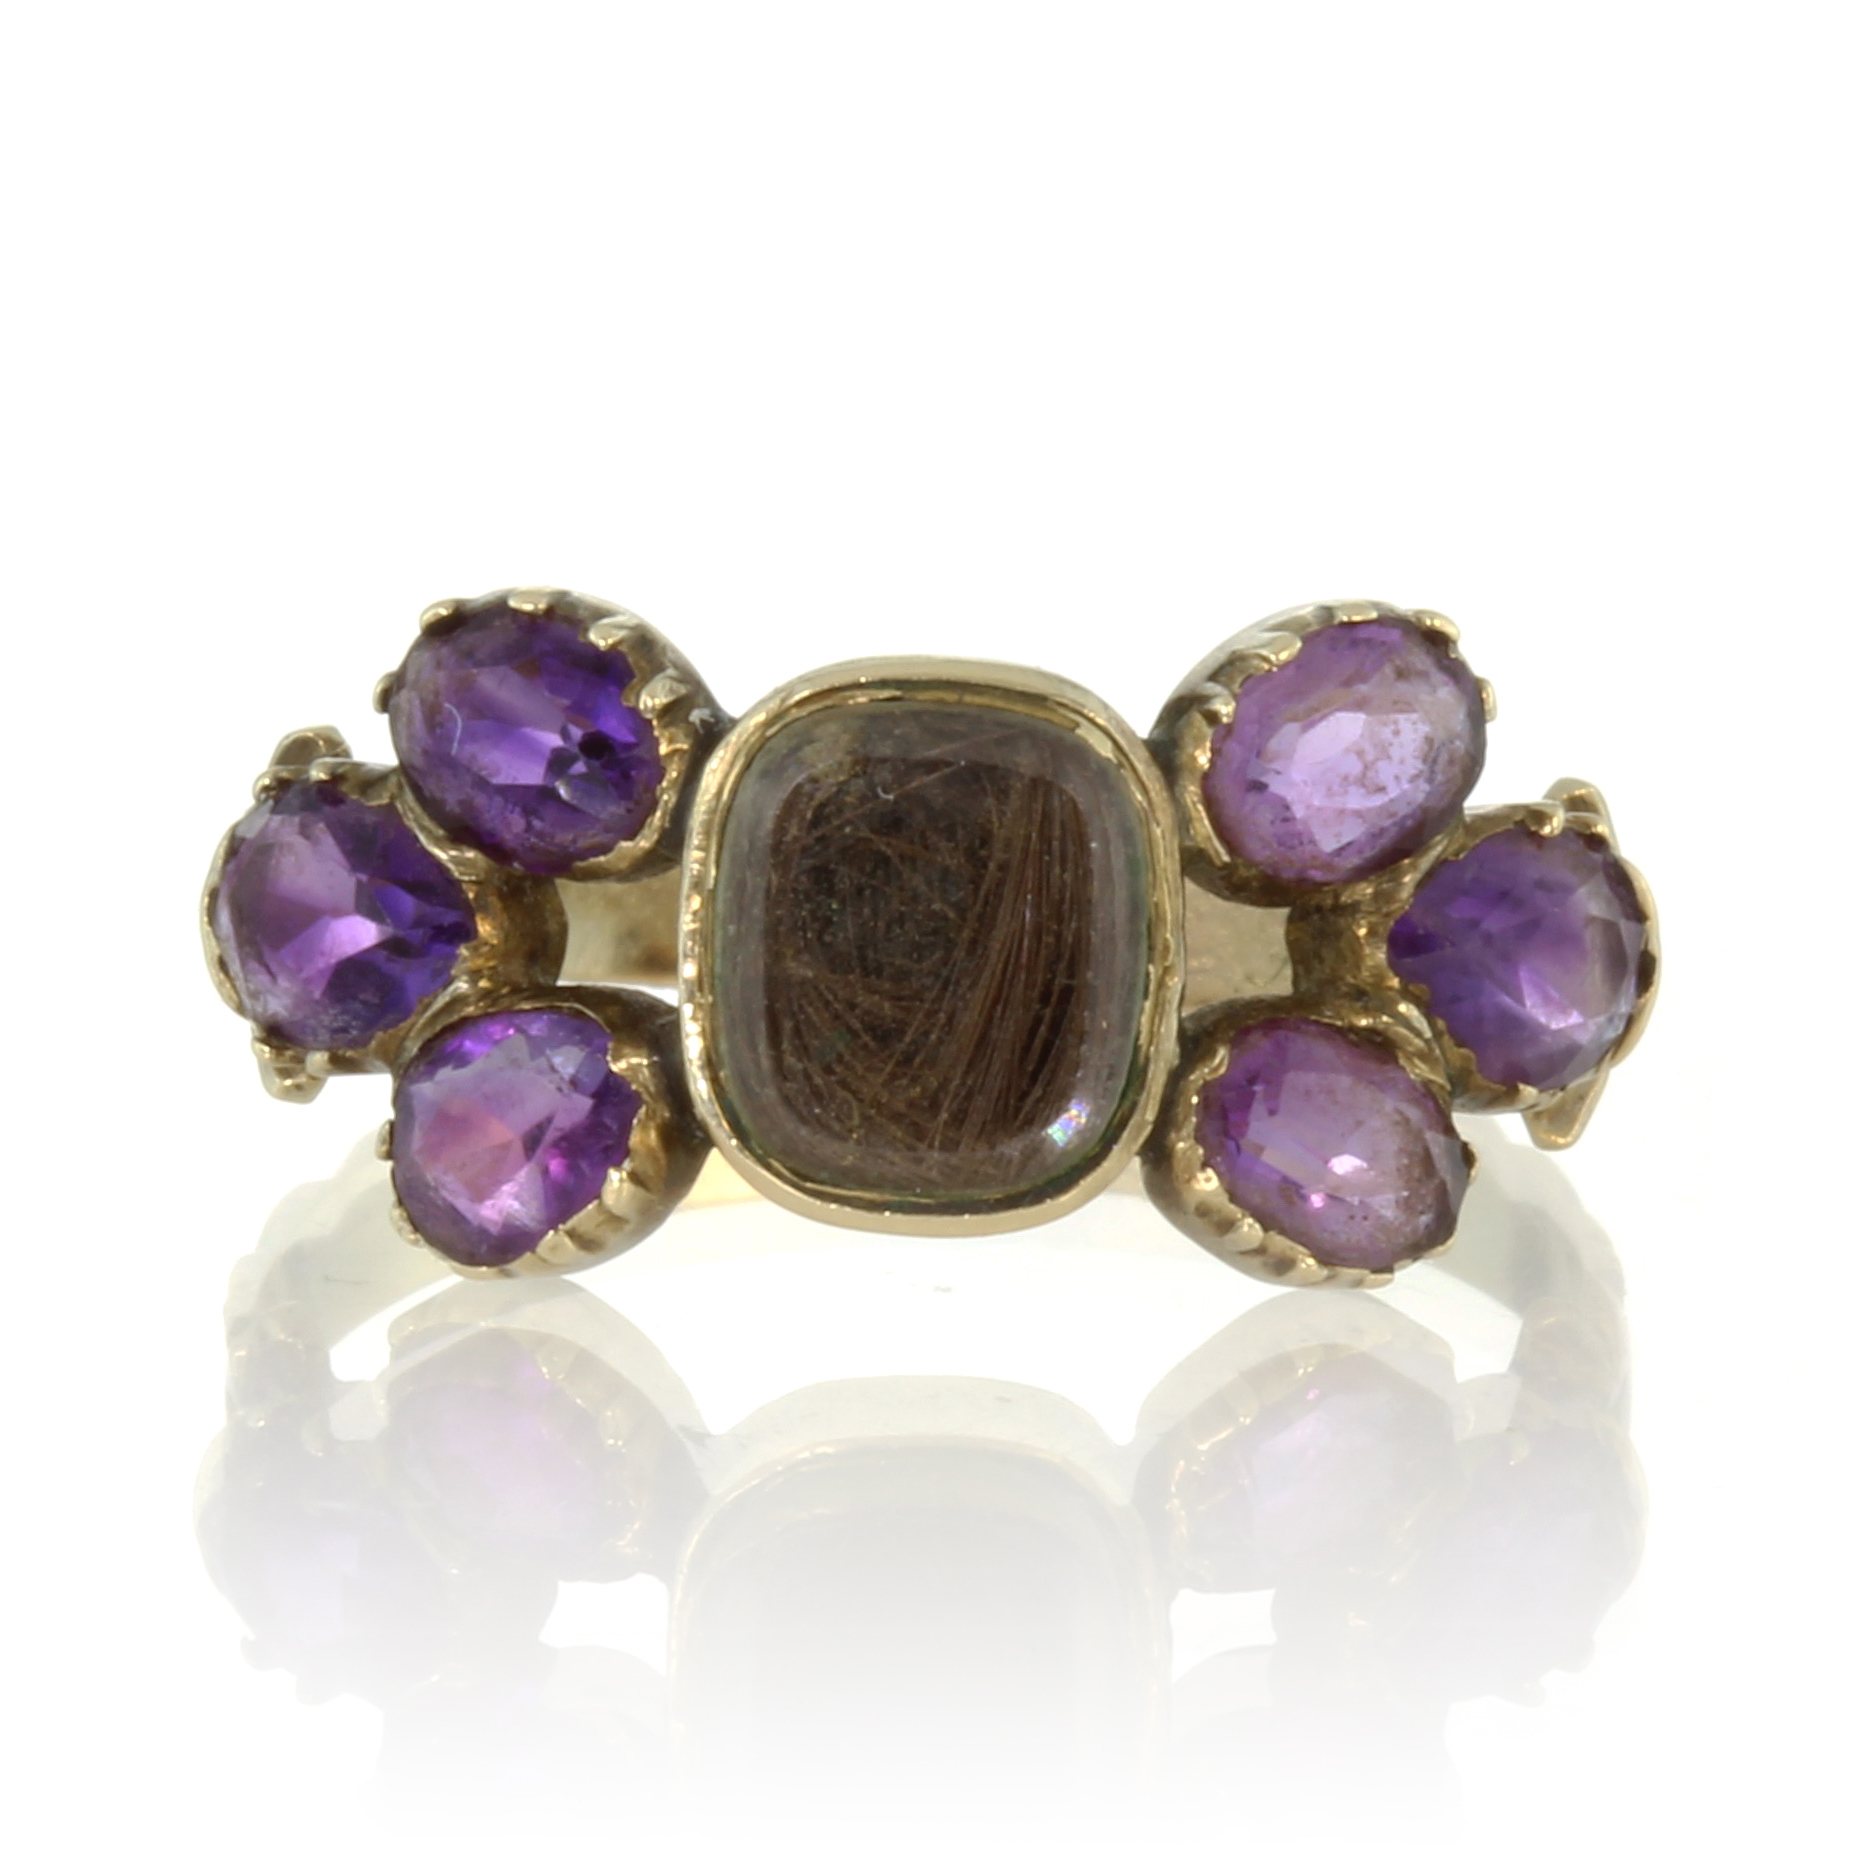 Los 55 - An antique Georgian hairwork and amethyst mourning ring in high carat yellow gold designed as a